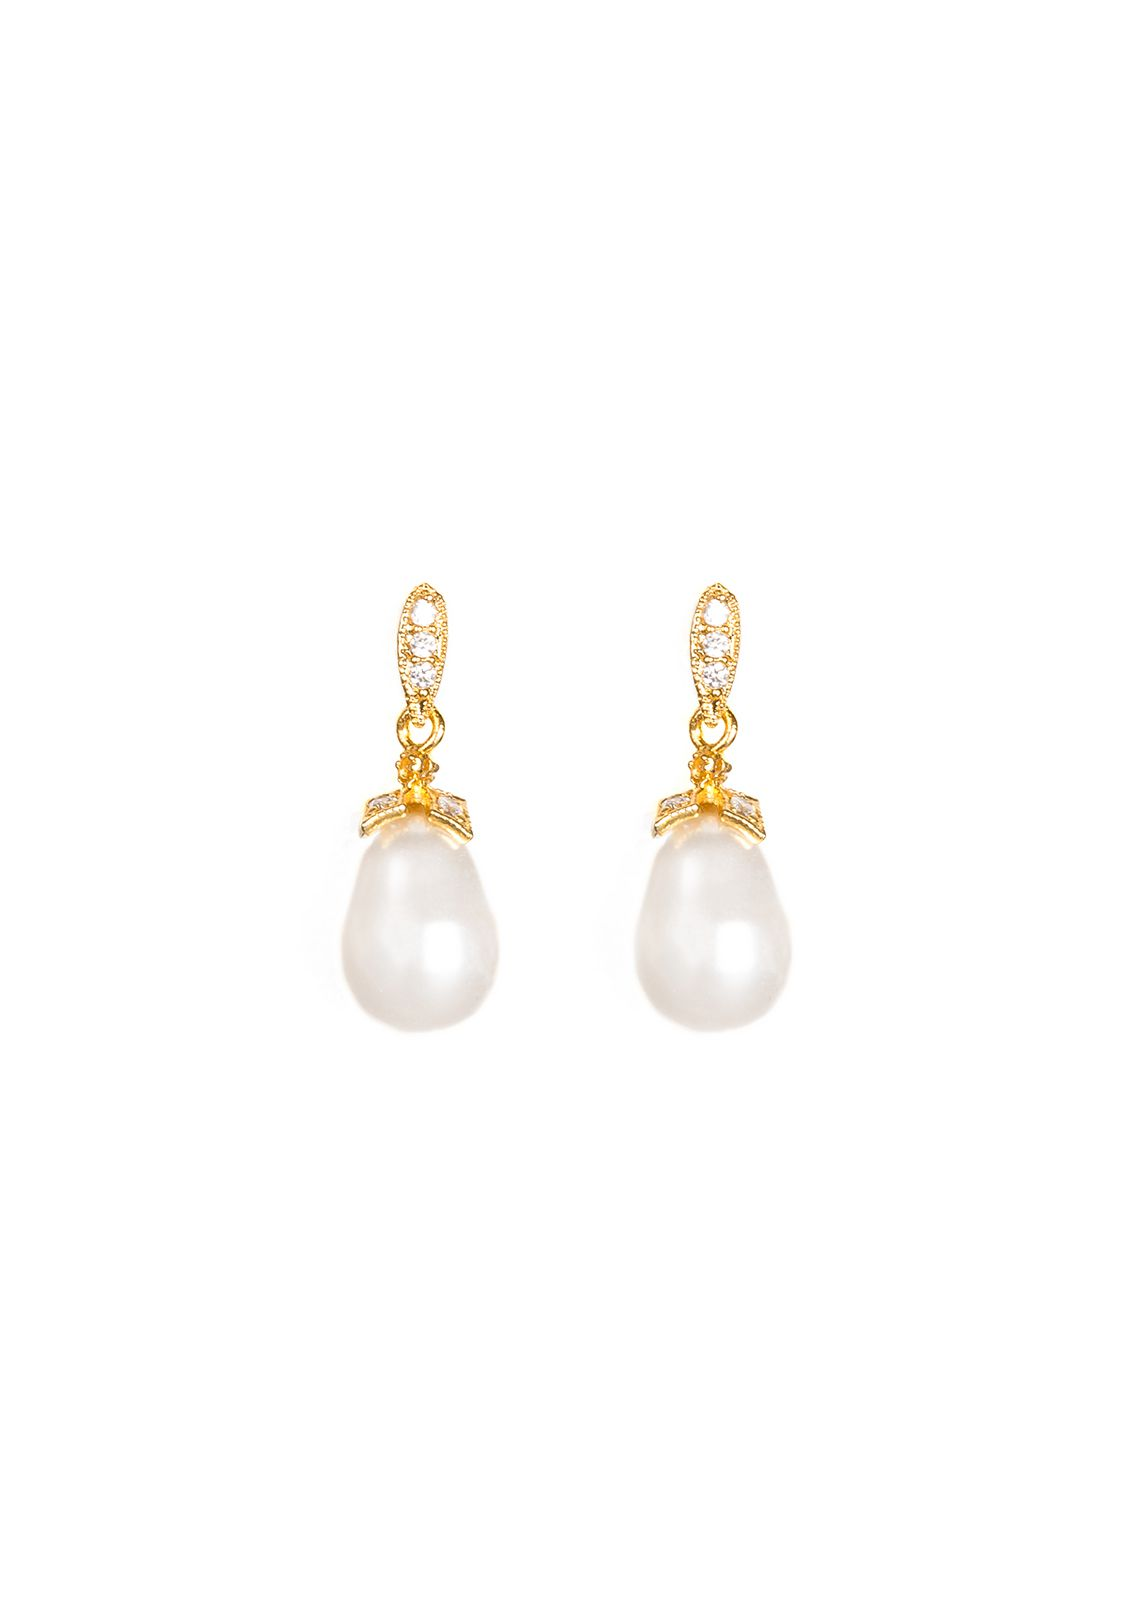 Jewellery Designer Tania Maras Bridal Pearl and Gold Earrings featured on LOVE FIND CO.